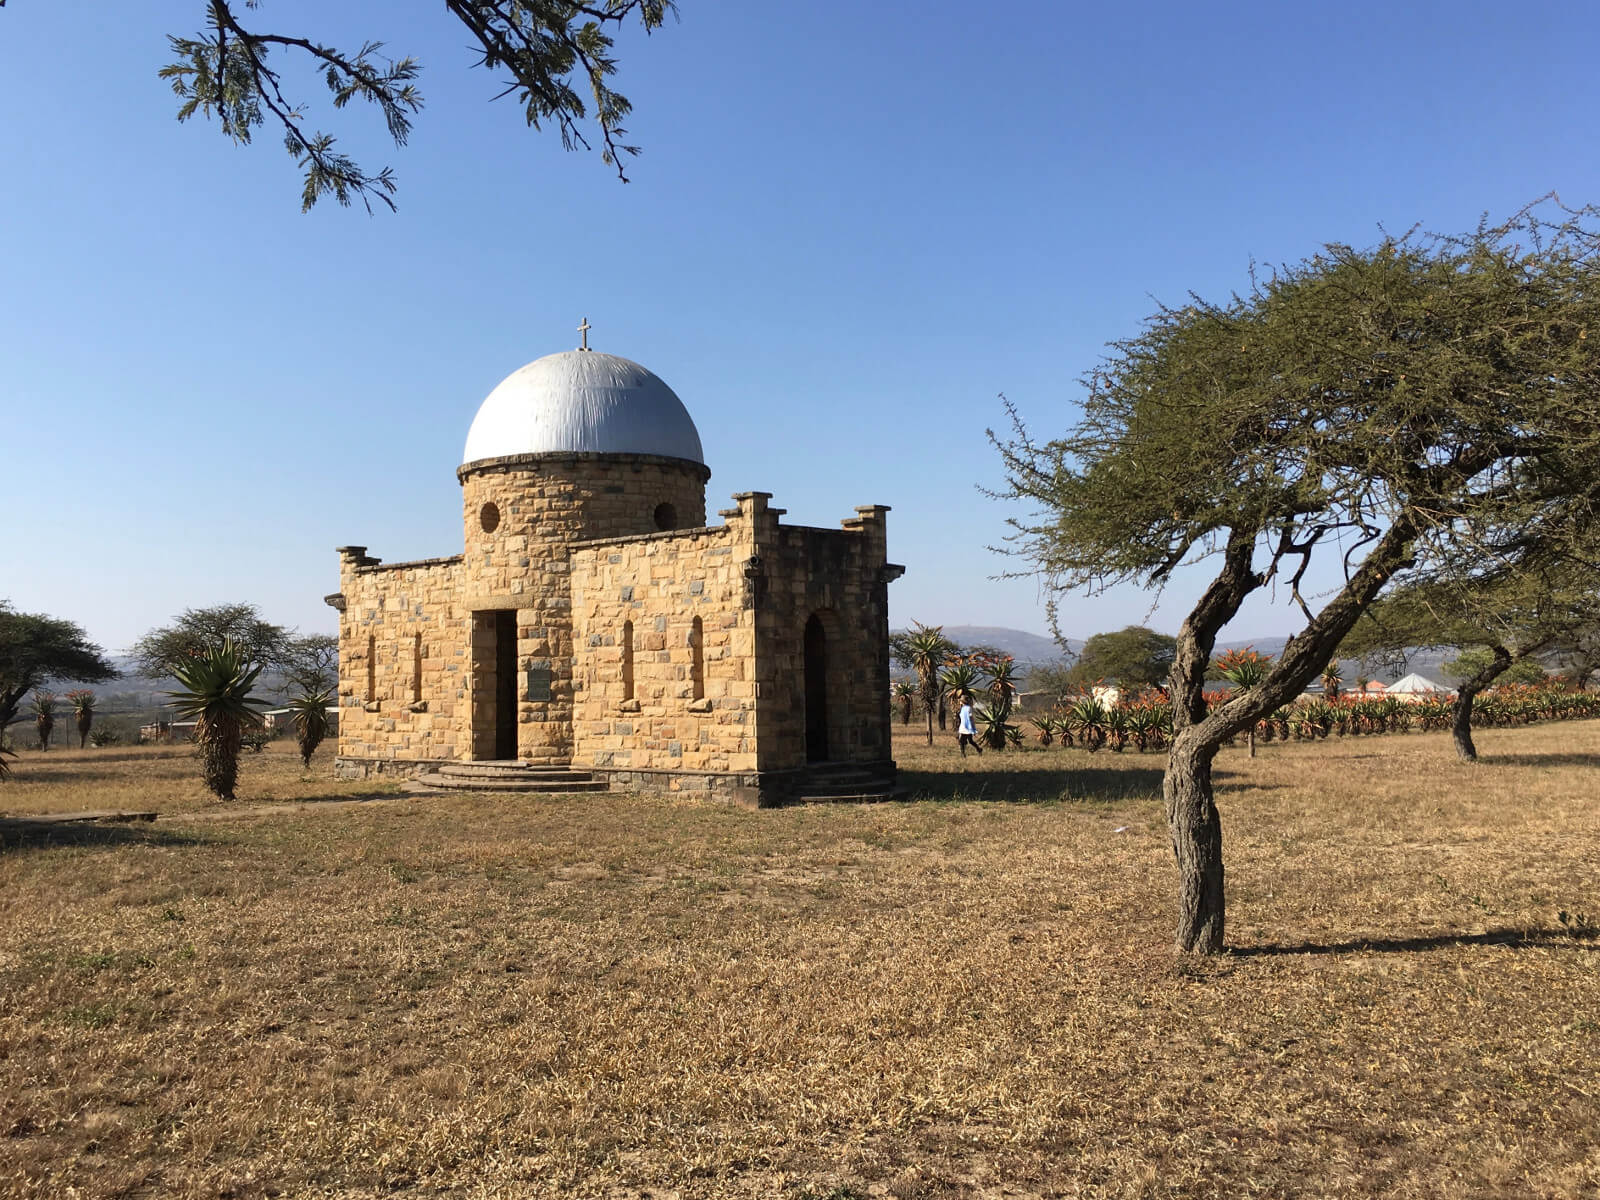 The Monument to British victory at Ulundi 4th July 1879